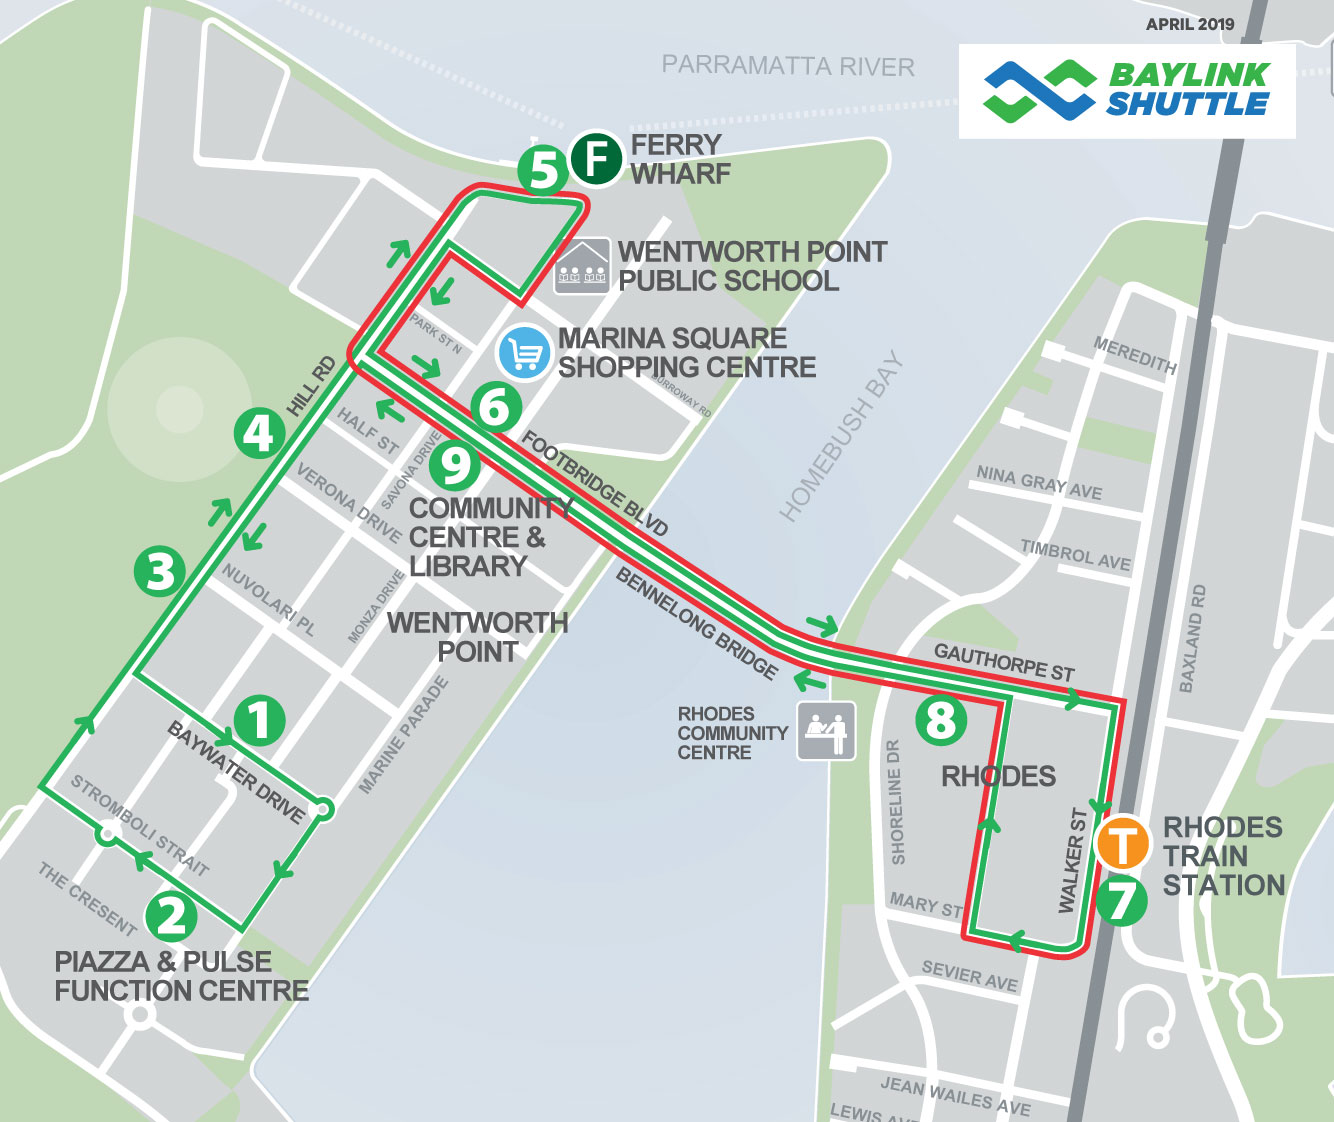 baylink shuttle wentworth point map april 2019